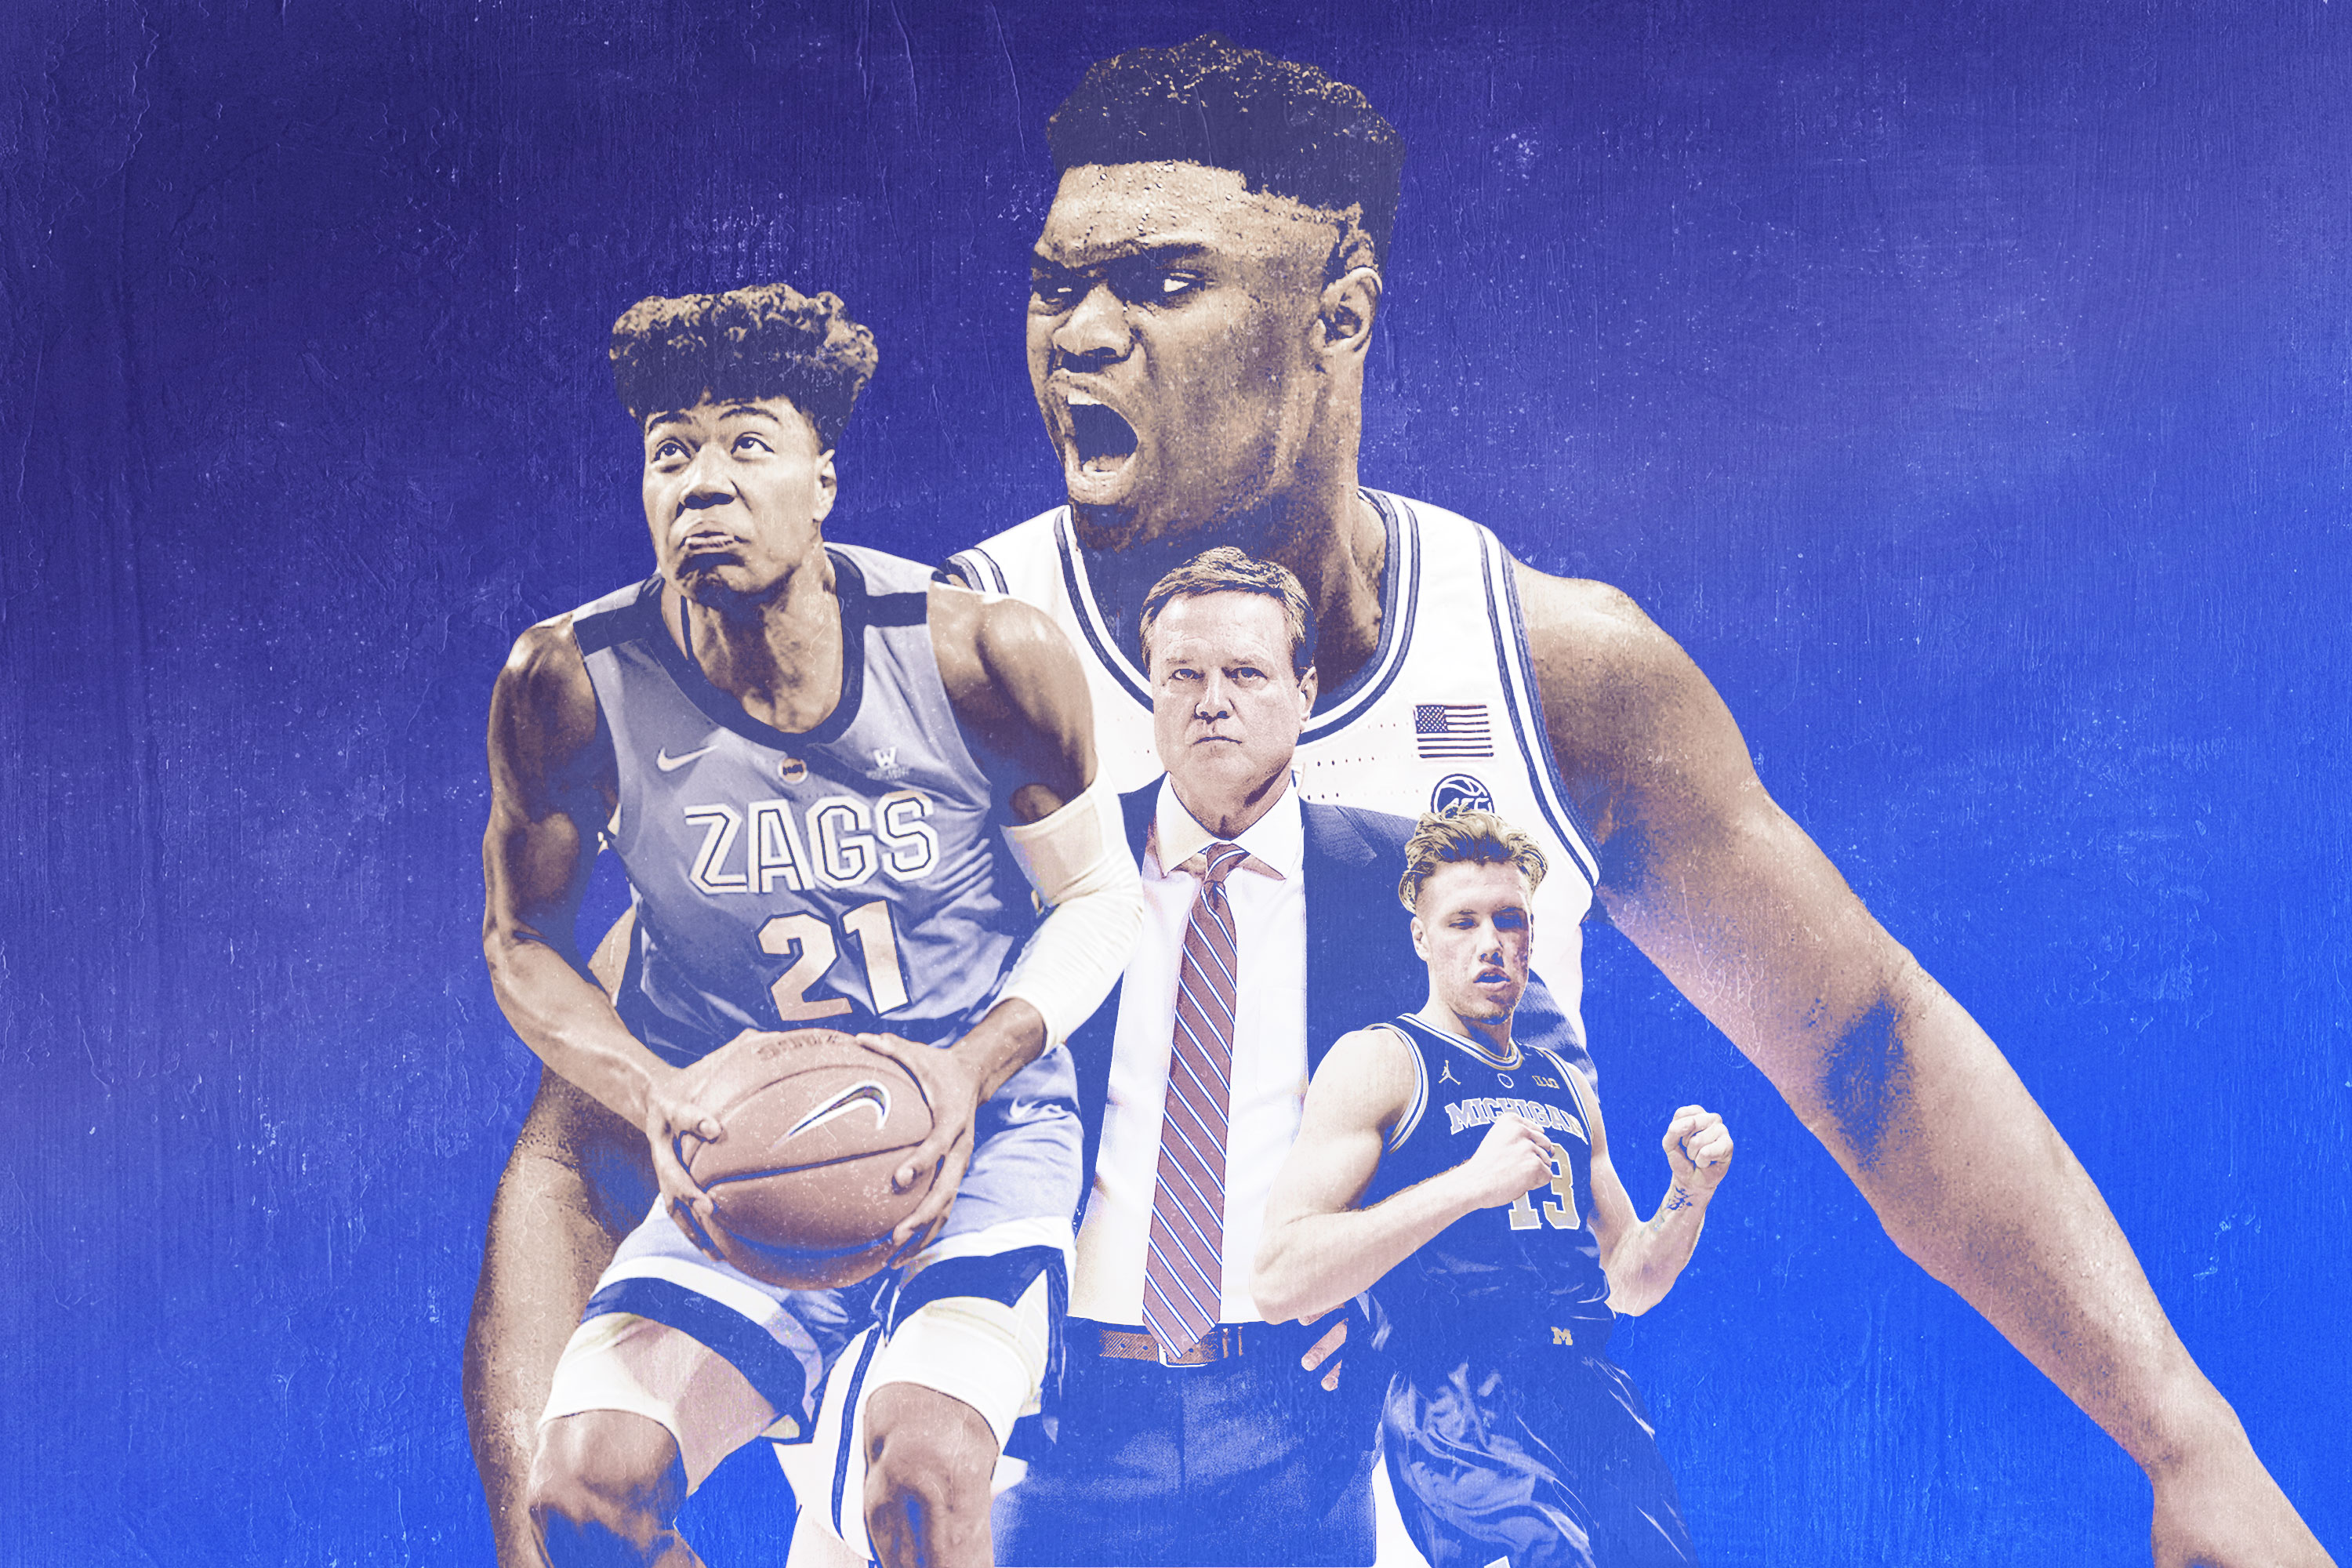 d425ff8c0 College Basketball Power Rankings  Duke Is Outflanked by Michigan and  Gonzaga